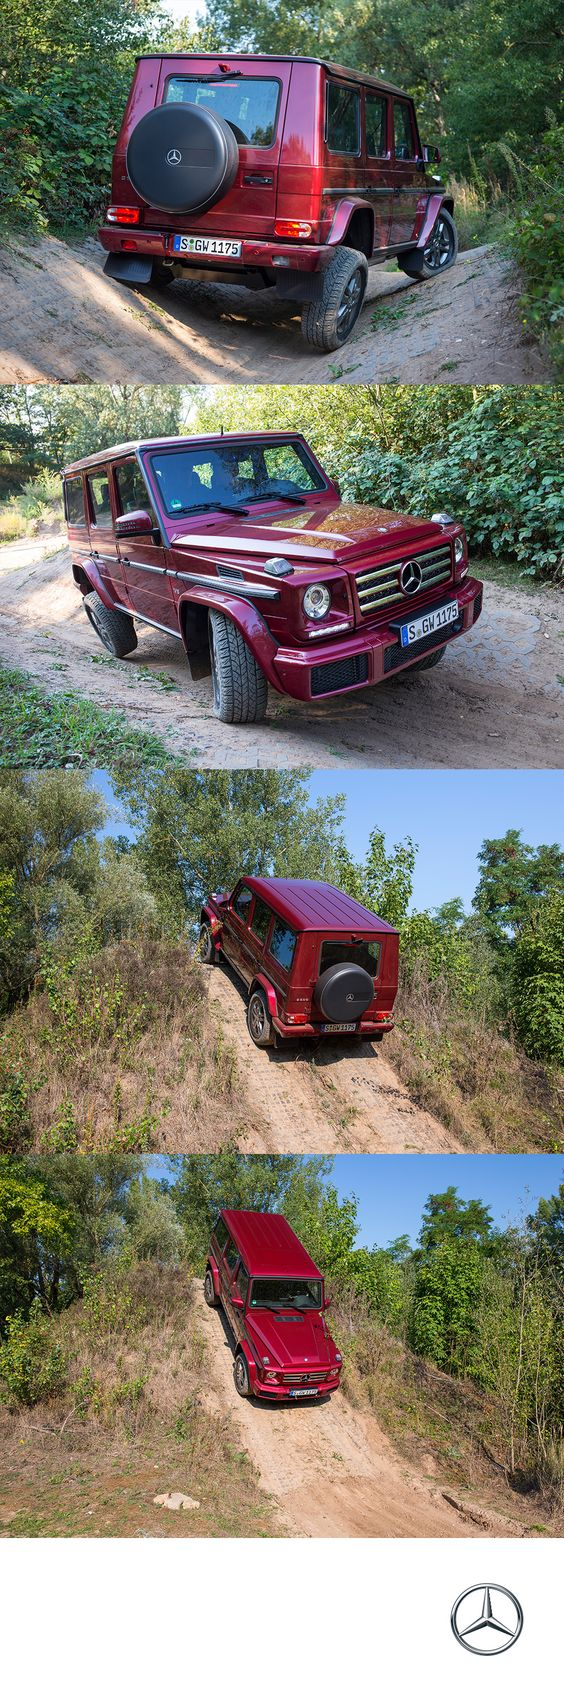 Tackling any terrain with the same ease as overtaking the outside lane, the G550 matches ruggedness with refinement like no other SUV in its segment.